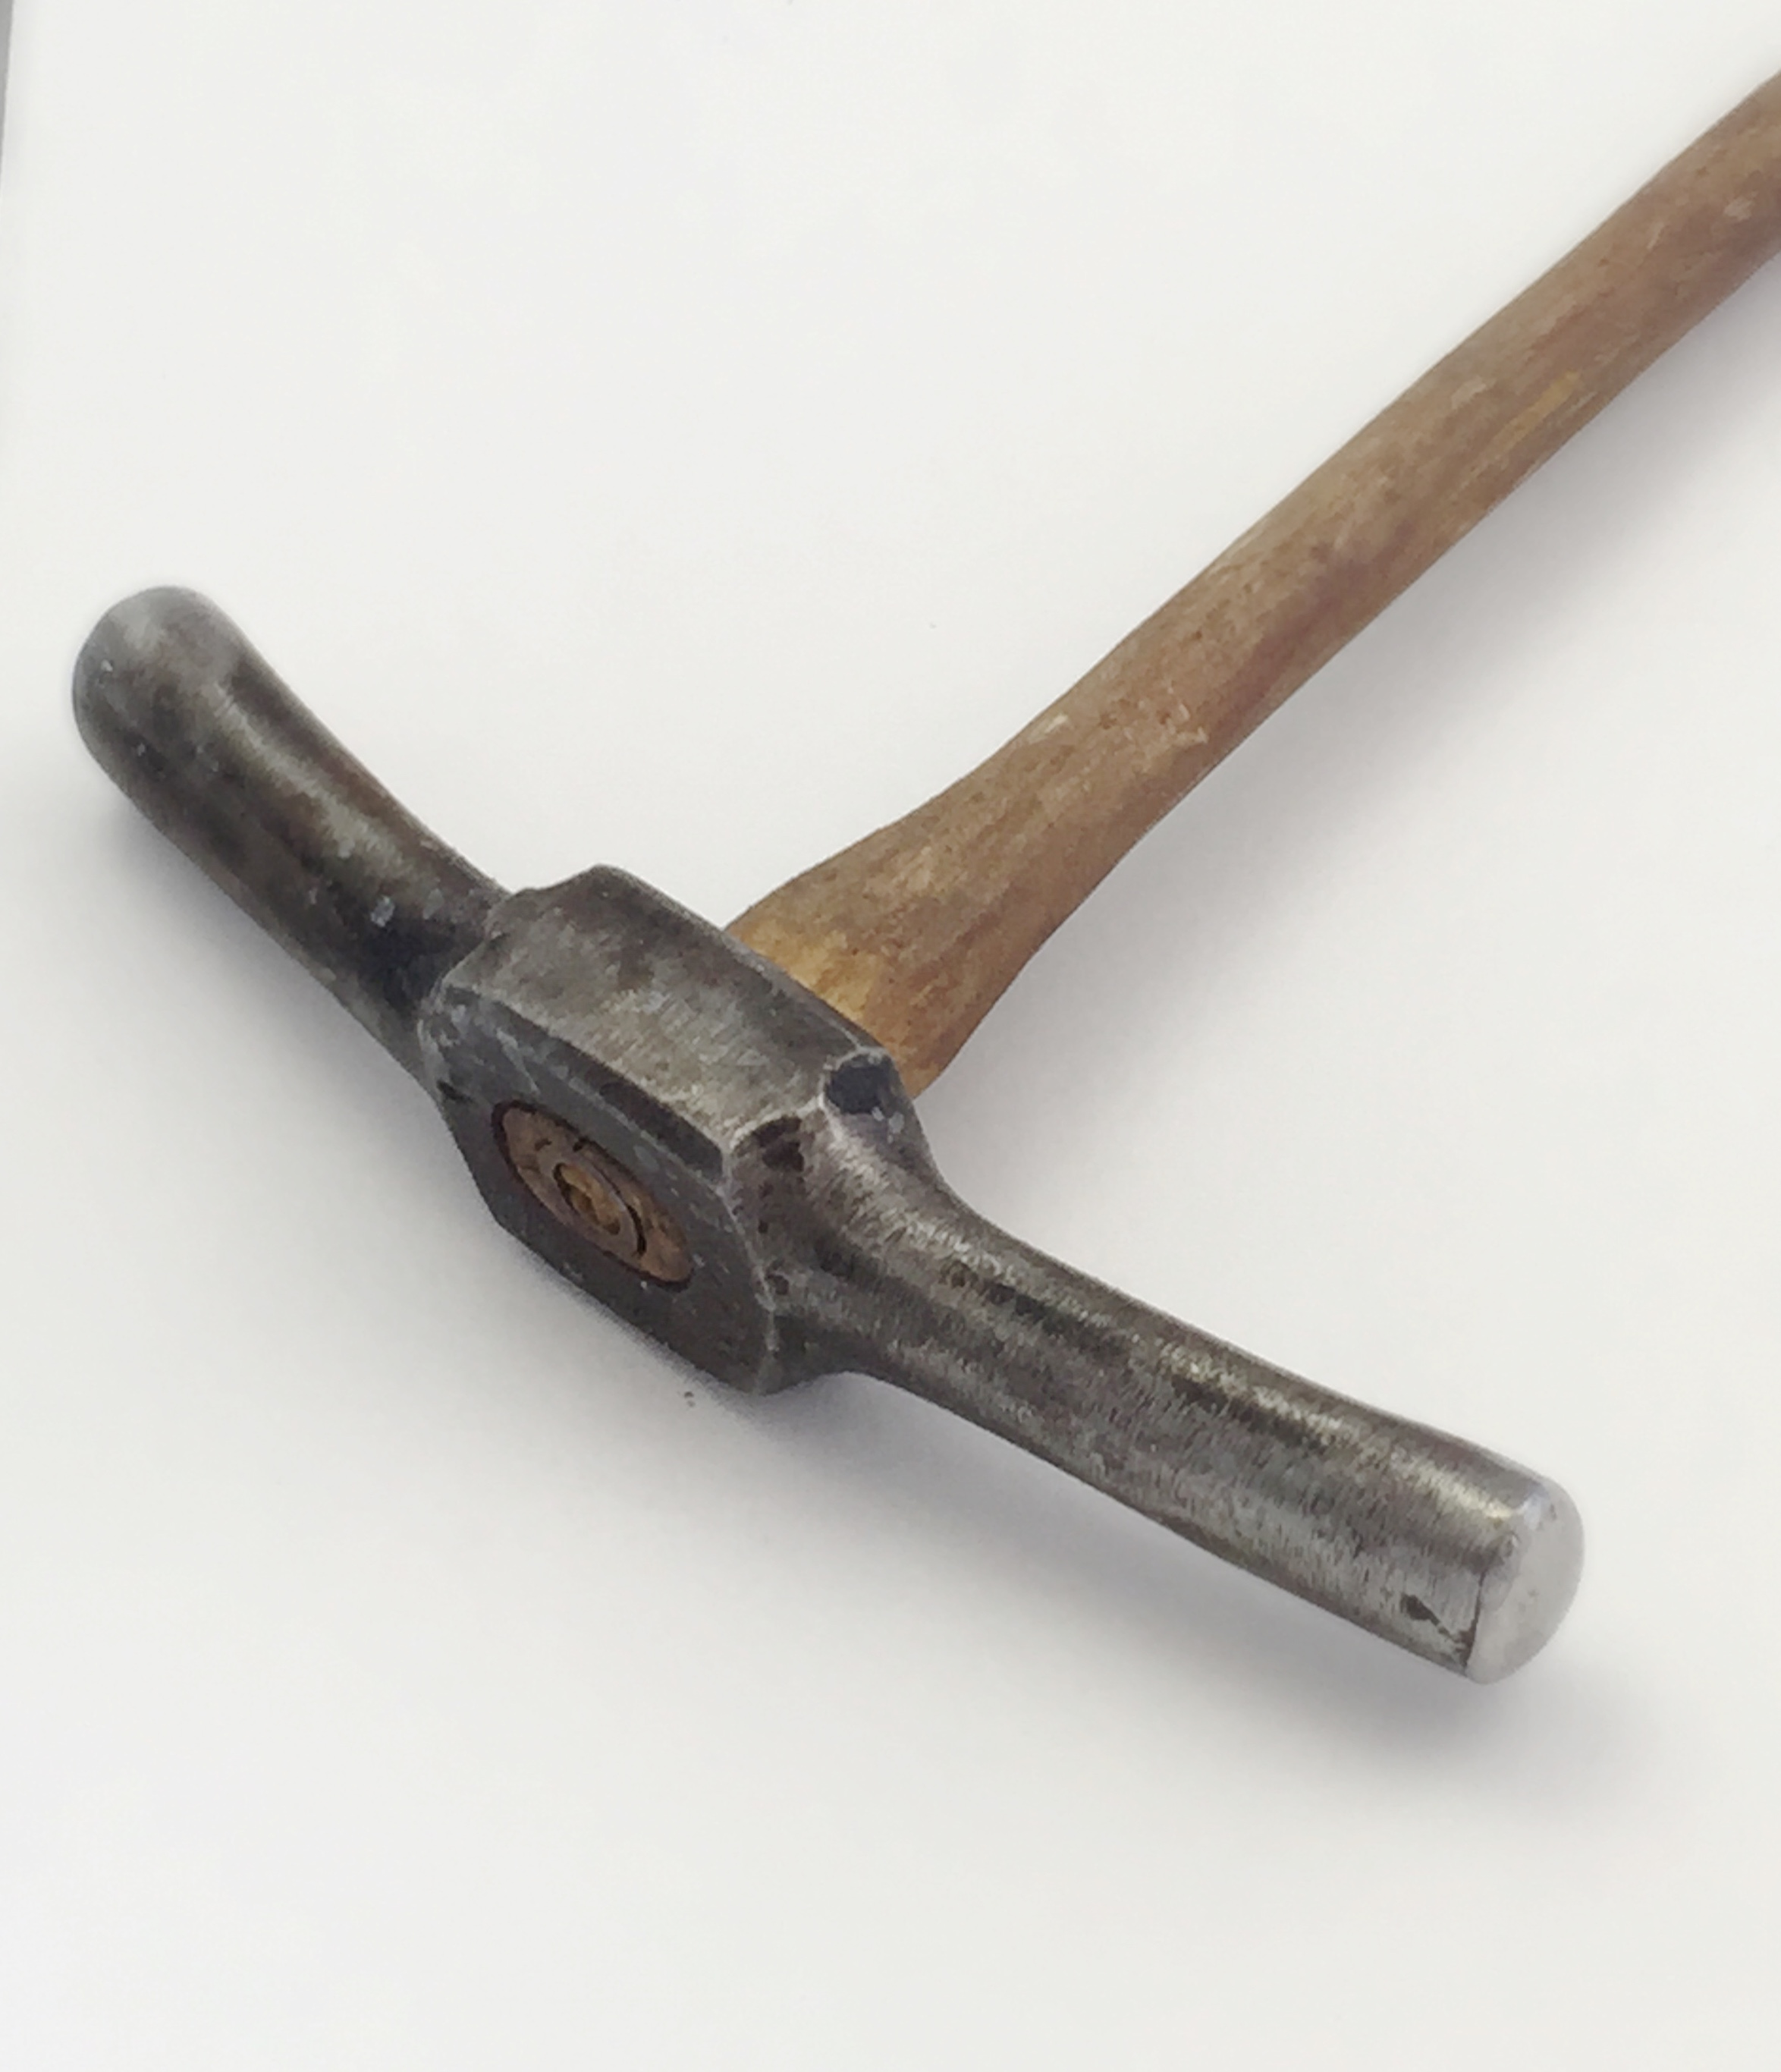 Hammer used for texture and shape